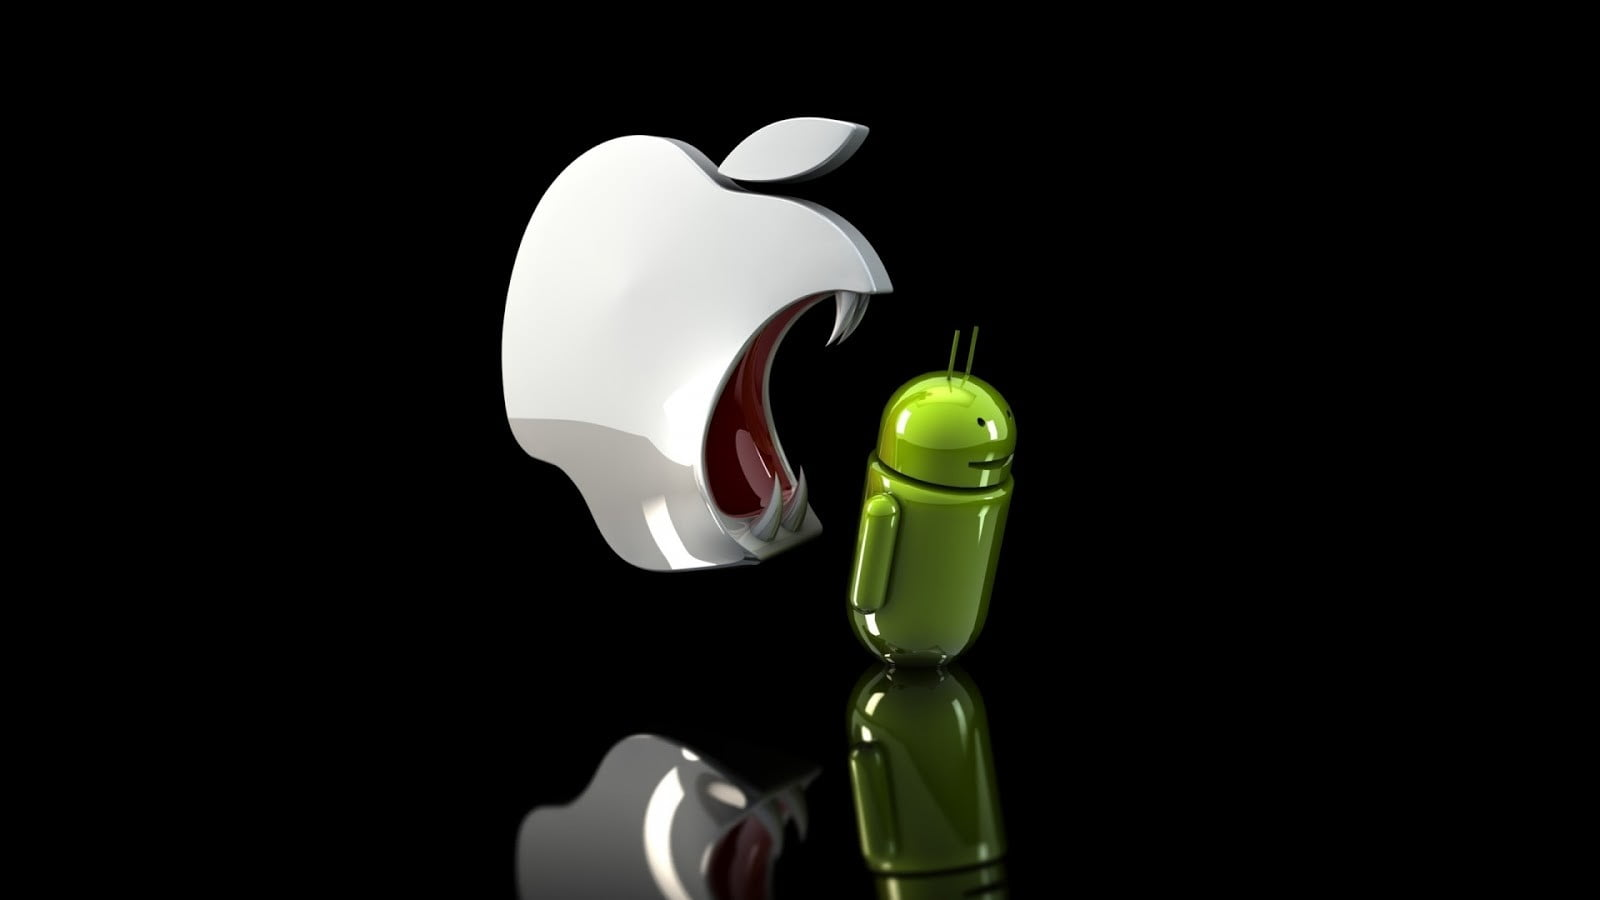 android and apple logo